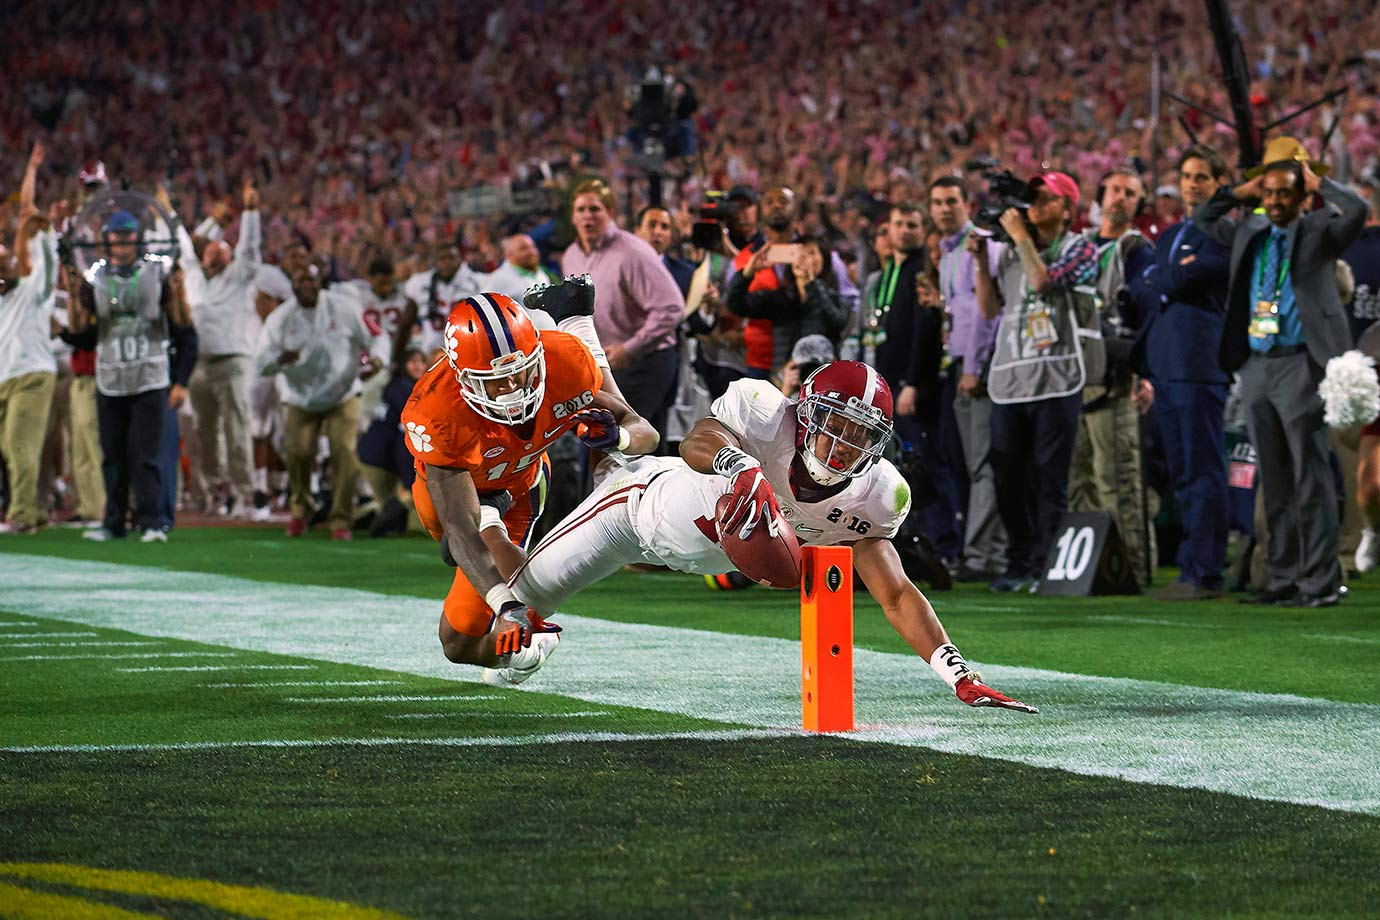 A pair of Heisman Trophy finalists. A 37-point fourth quarter. One of the greatest onside kicks in college football history. Oh, and did we mention this matchup determined the national championship? Alabama's epic title victory over Clemson evolved into an instant classic, one that saved us from a postseason defined by lifeless blowouts.